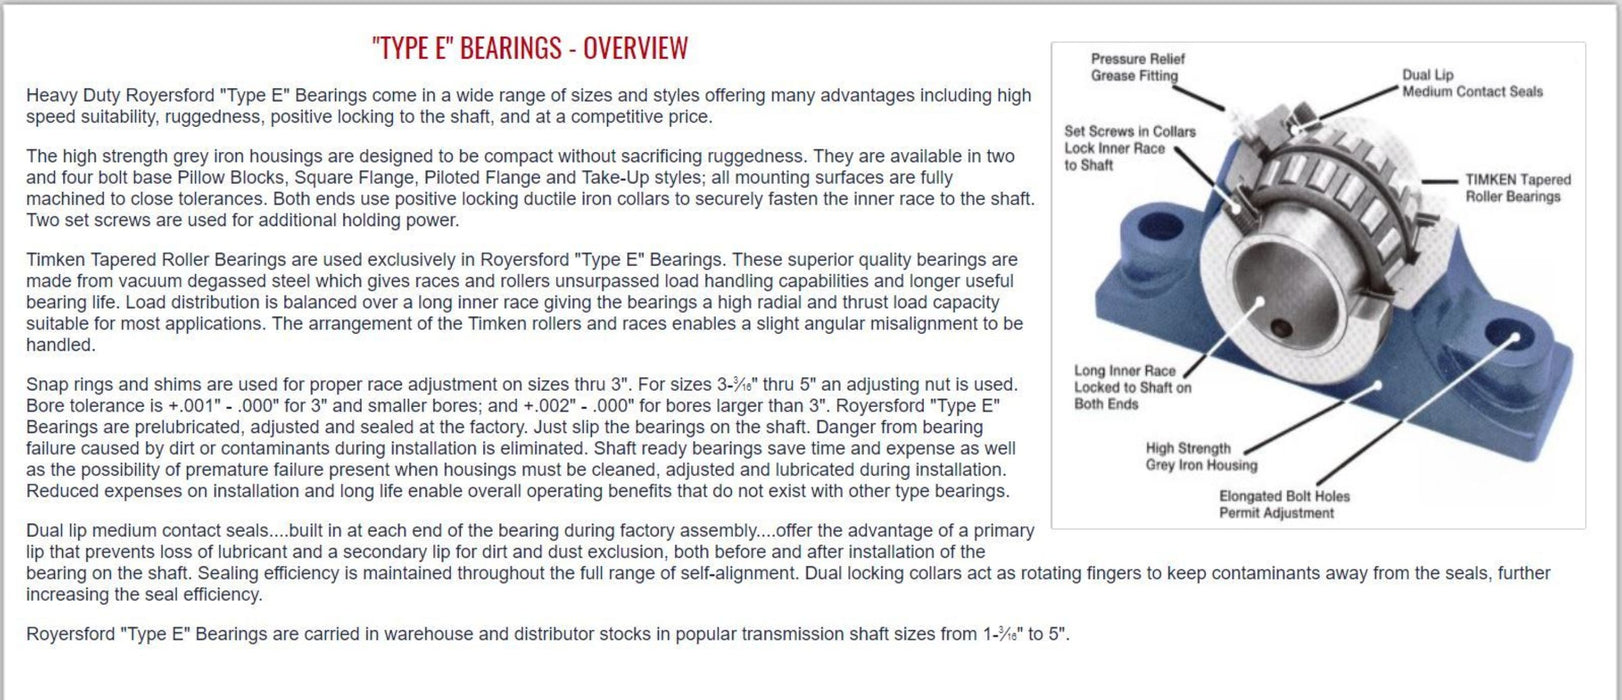 20-05-0308, ROYERSFORD TYPE E 4 Bolt Square Flange Bearing, 3-1/2 with Timken Tapered Roller Bearings